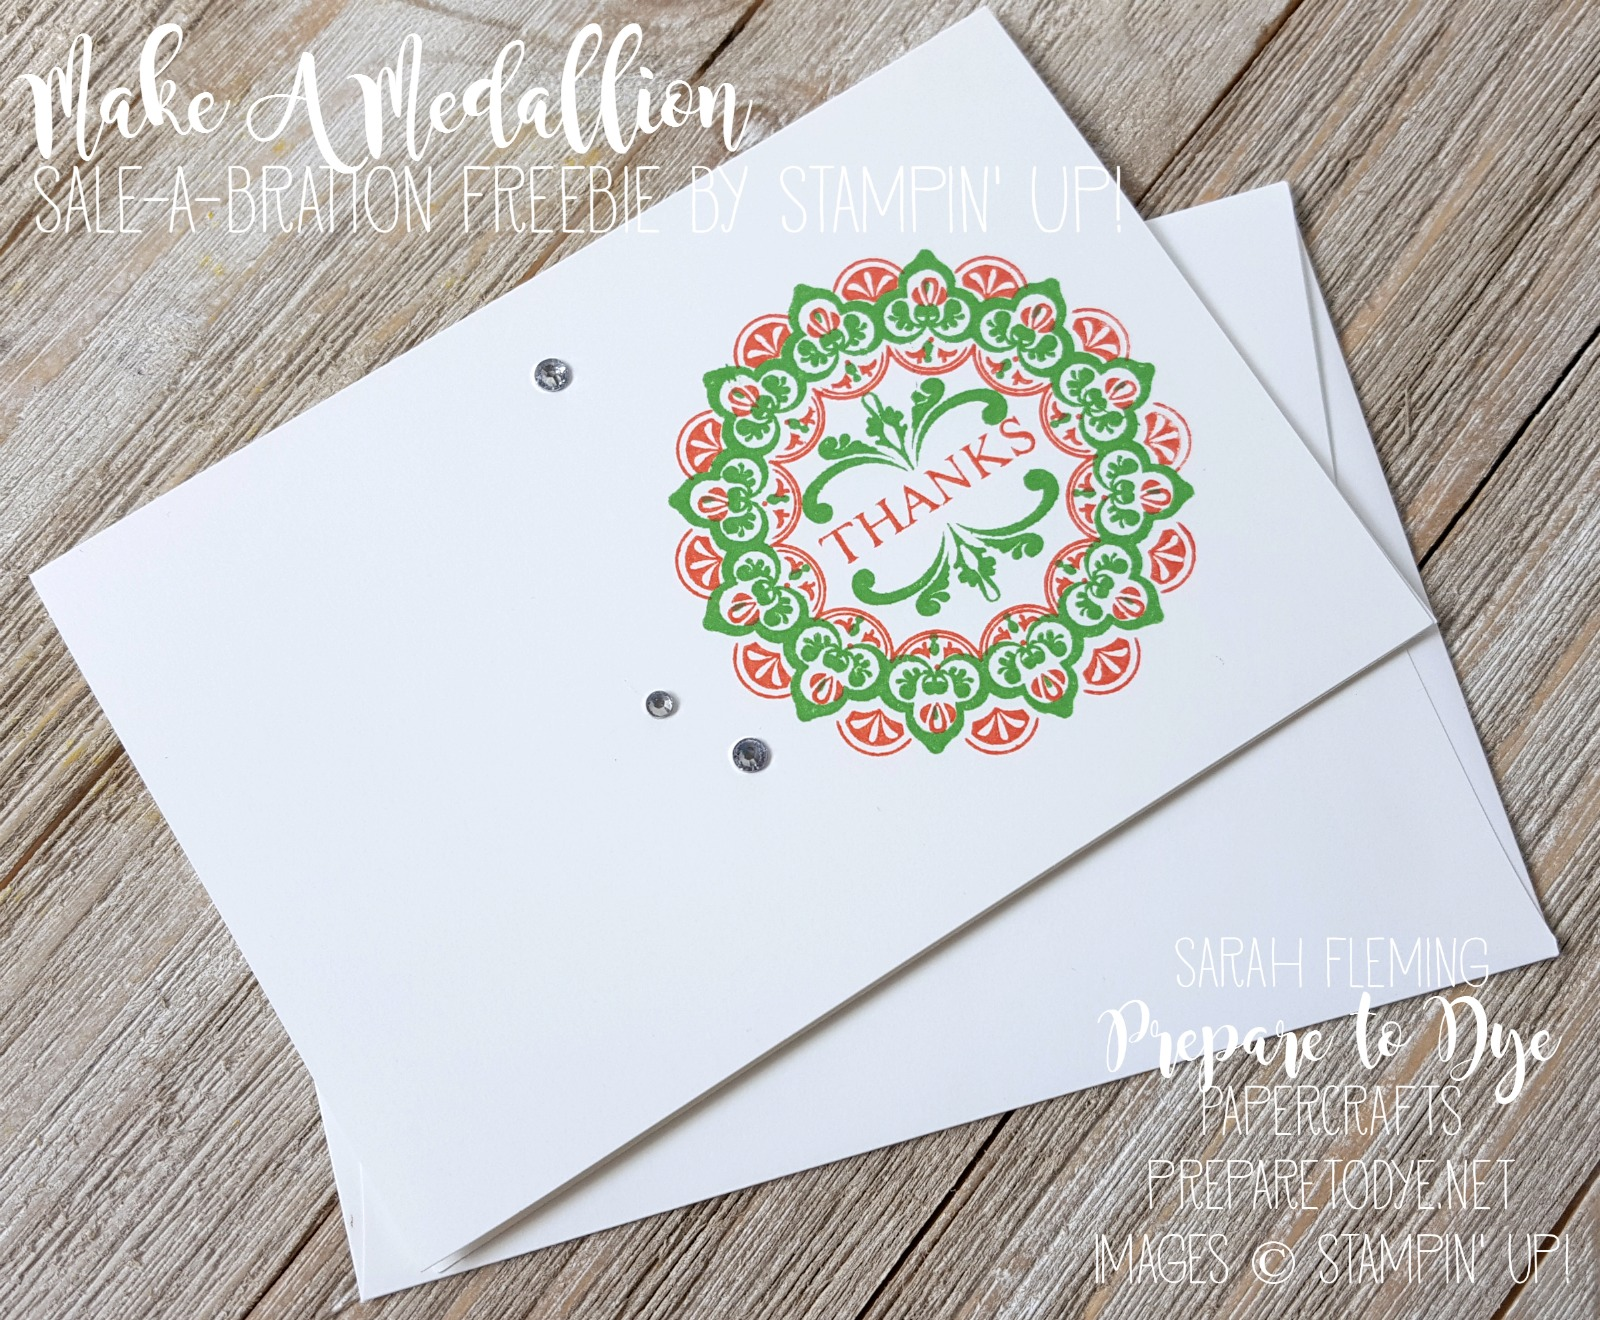 Stampin' Up! Make a Medallion stamp set - see 8 note cards and 8 Sale-A-Bration stamp sets - Sarah Fleming - Prepare to Dye Papercrafts